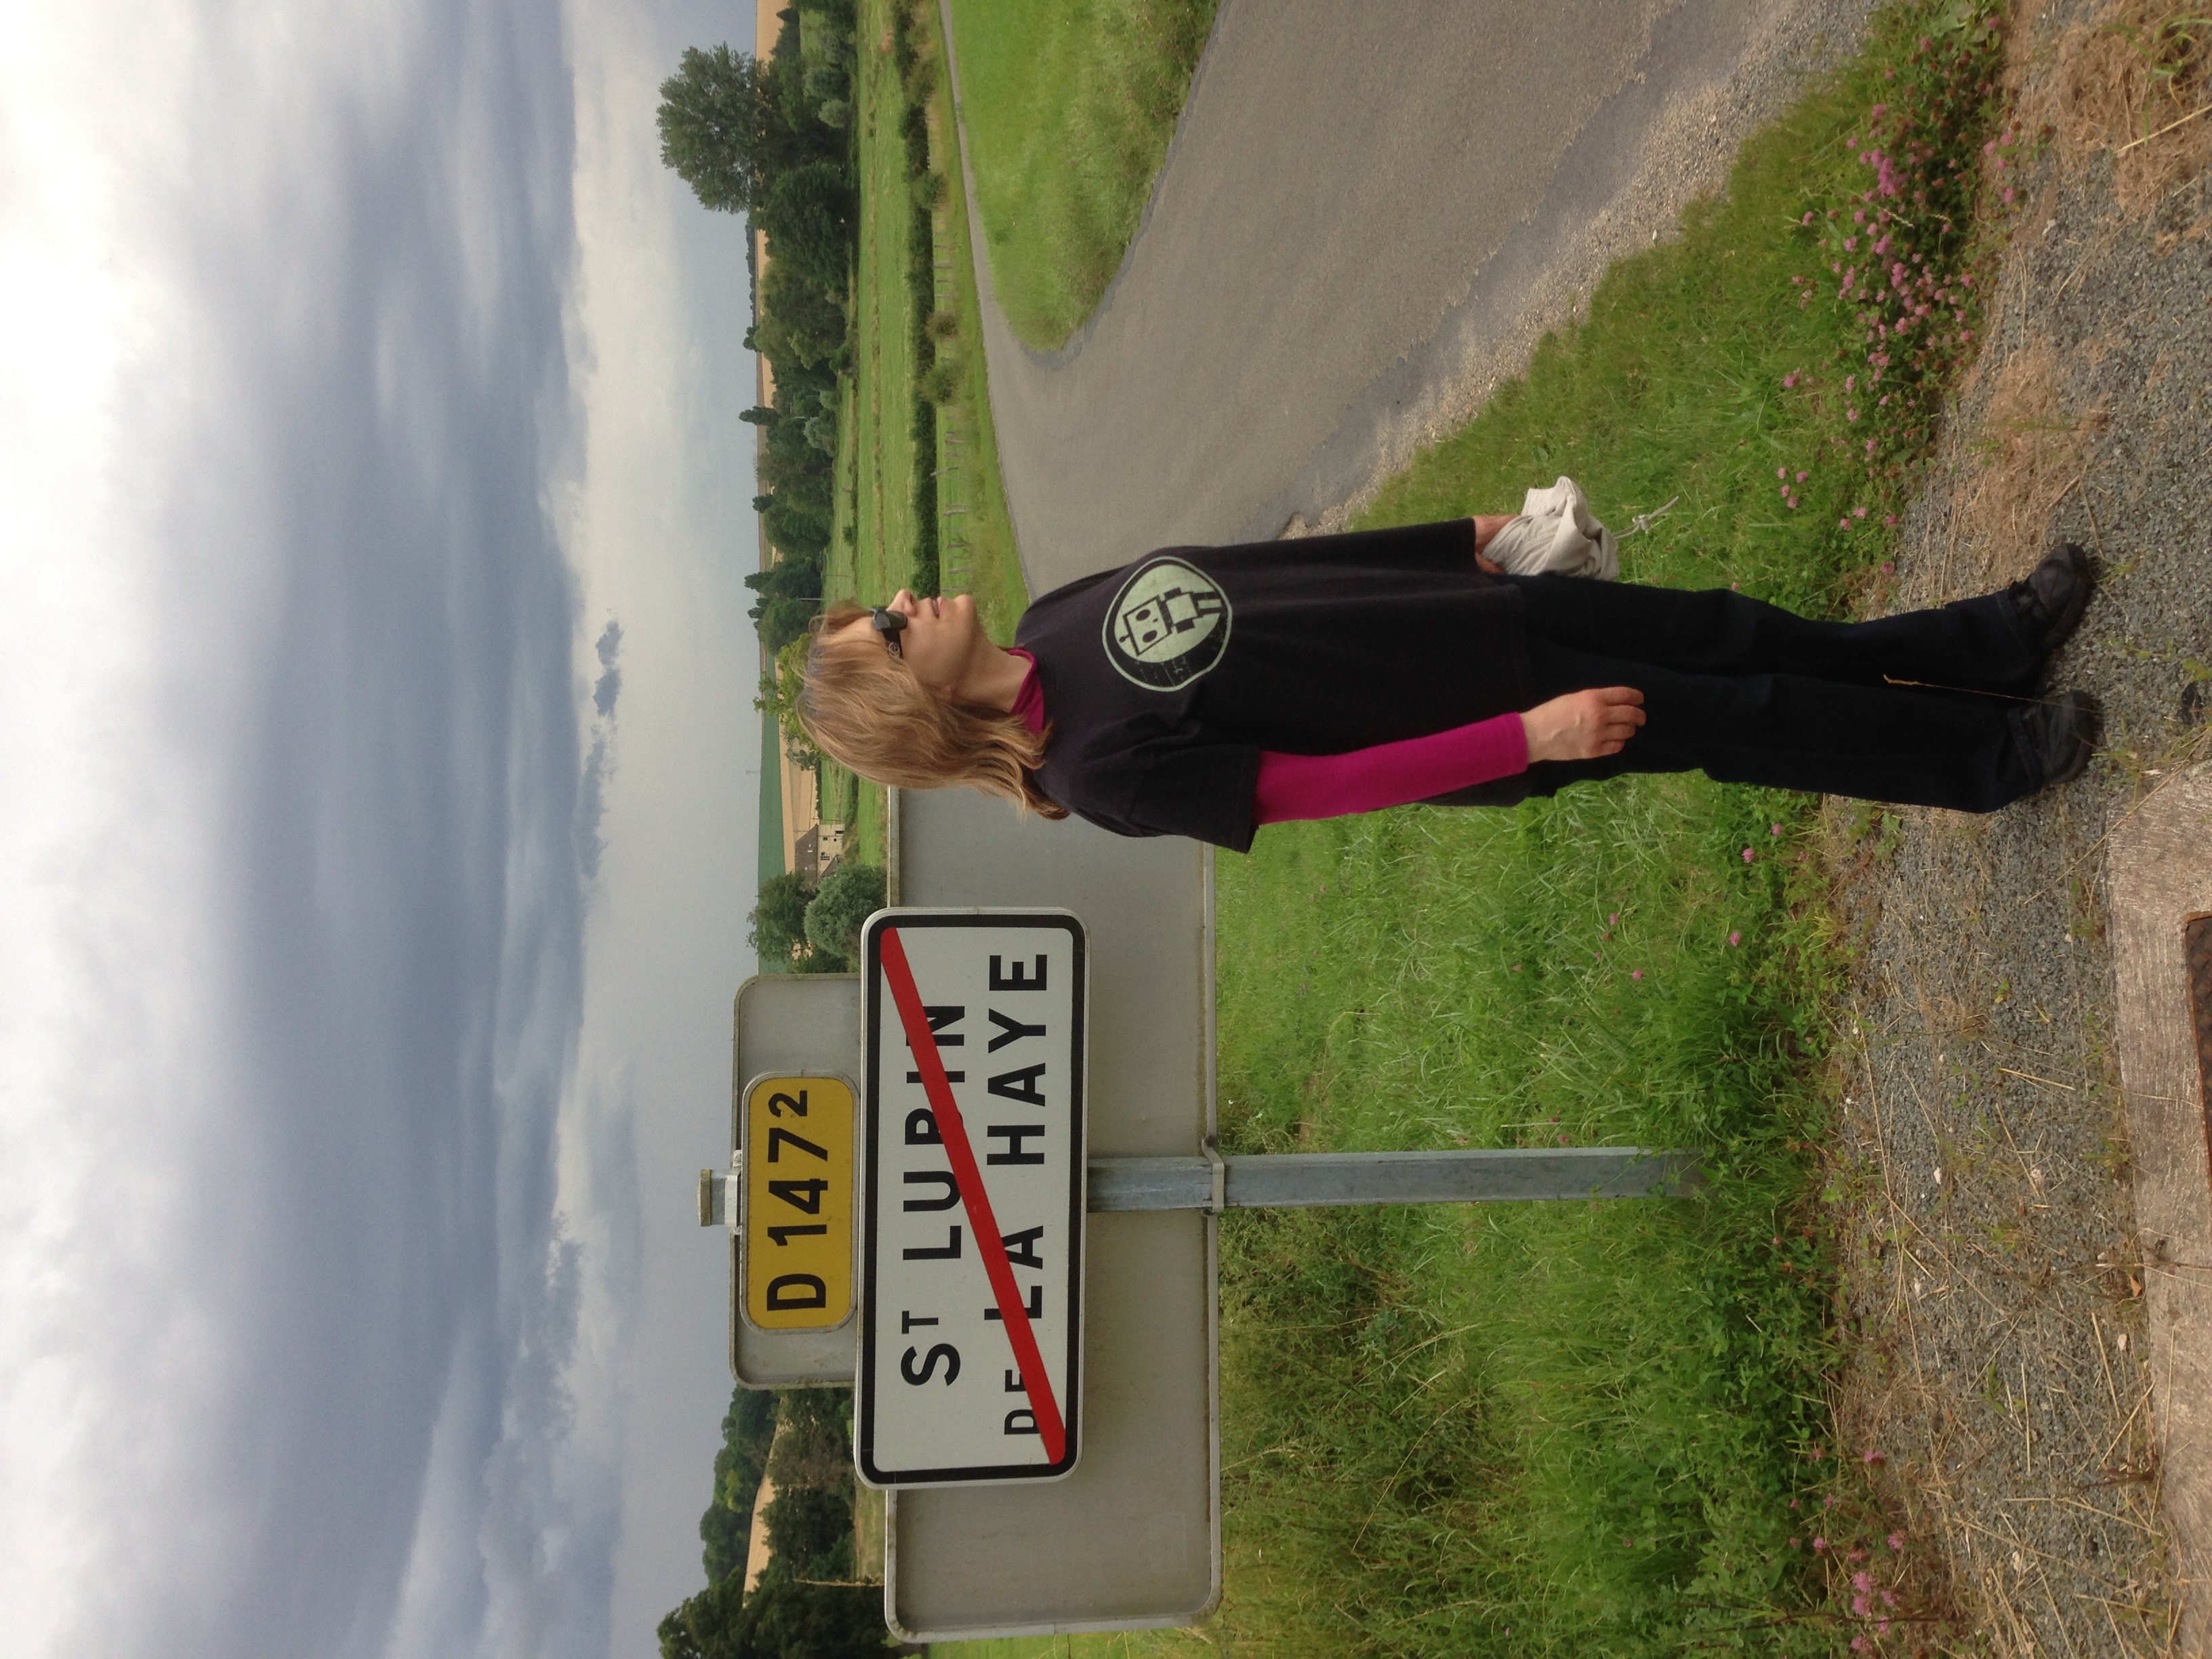 Me on a trip to France...Can you guess what this street sign means?